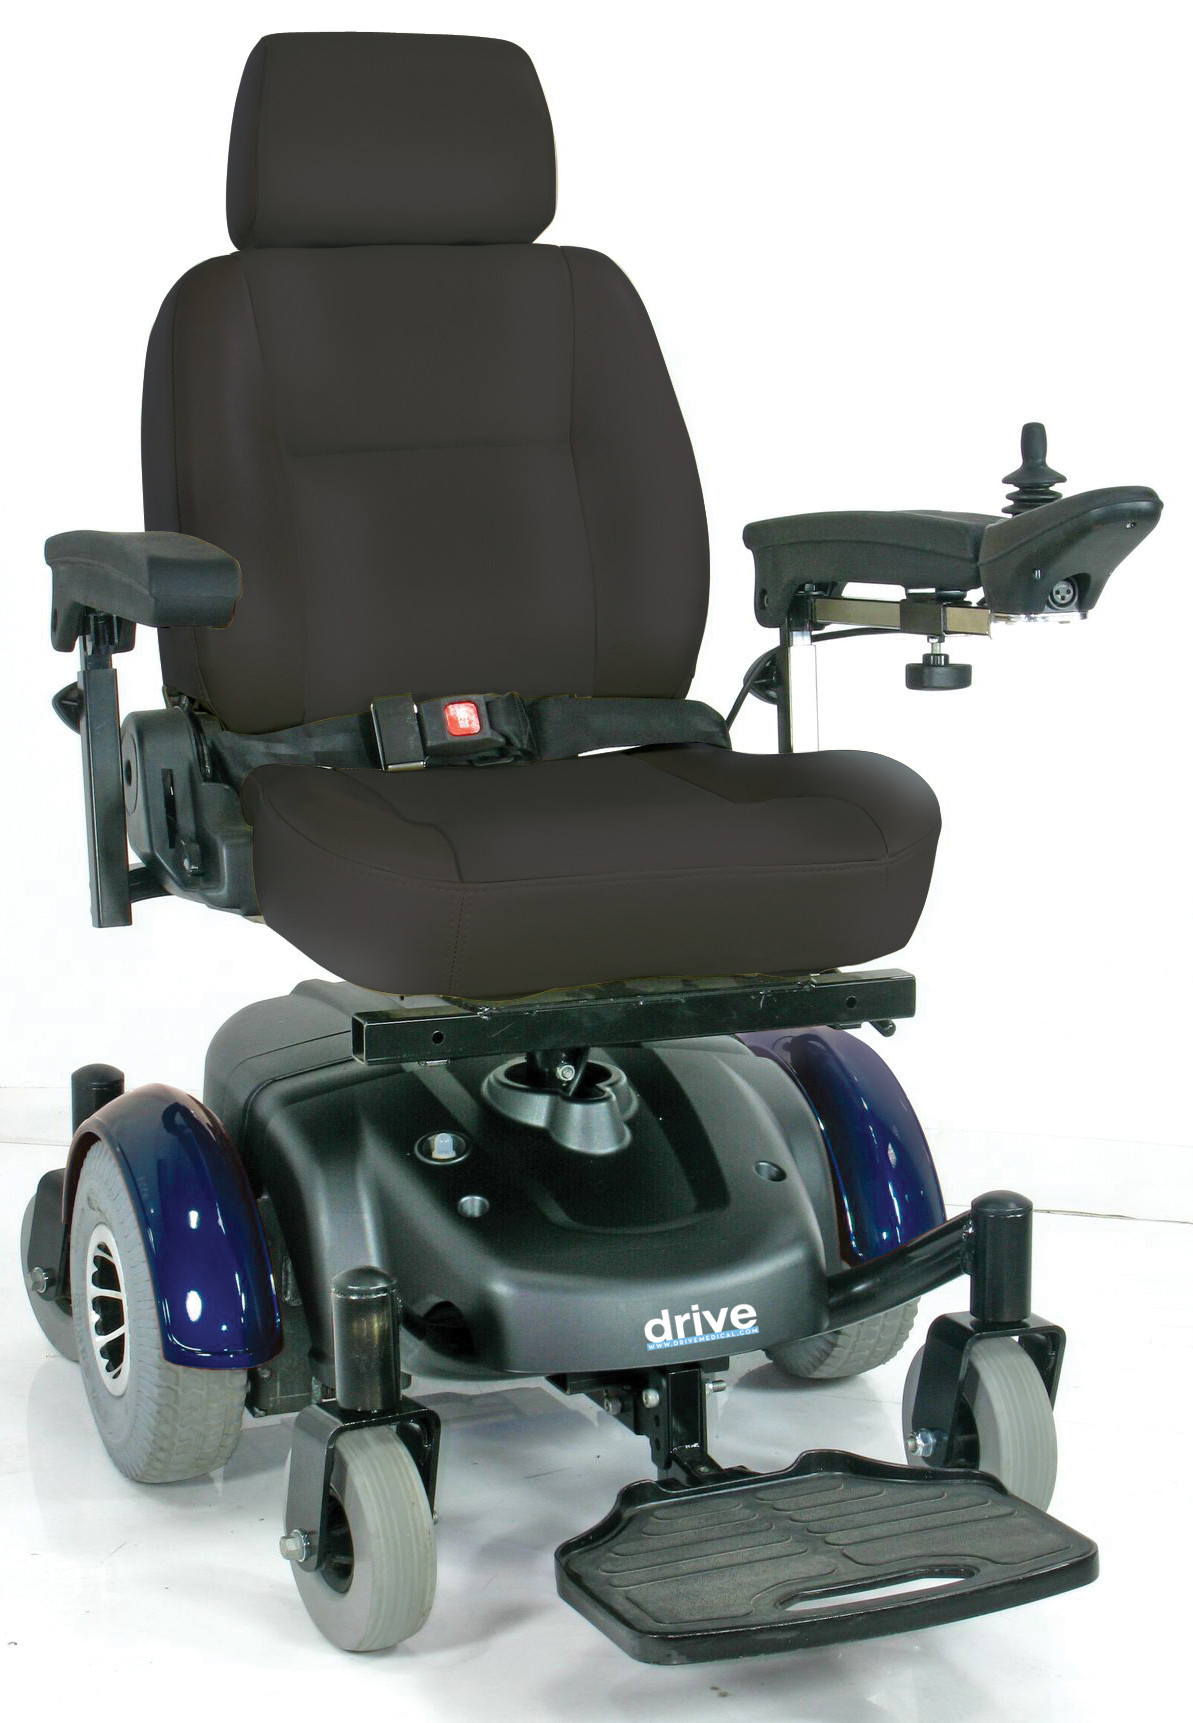 Image EC Mid Wheel Drive Power Wheelchair - Blue Panels - Front View